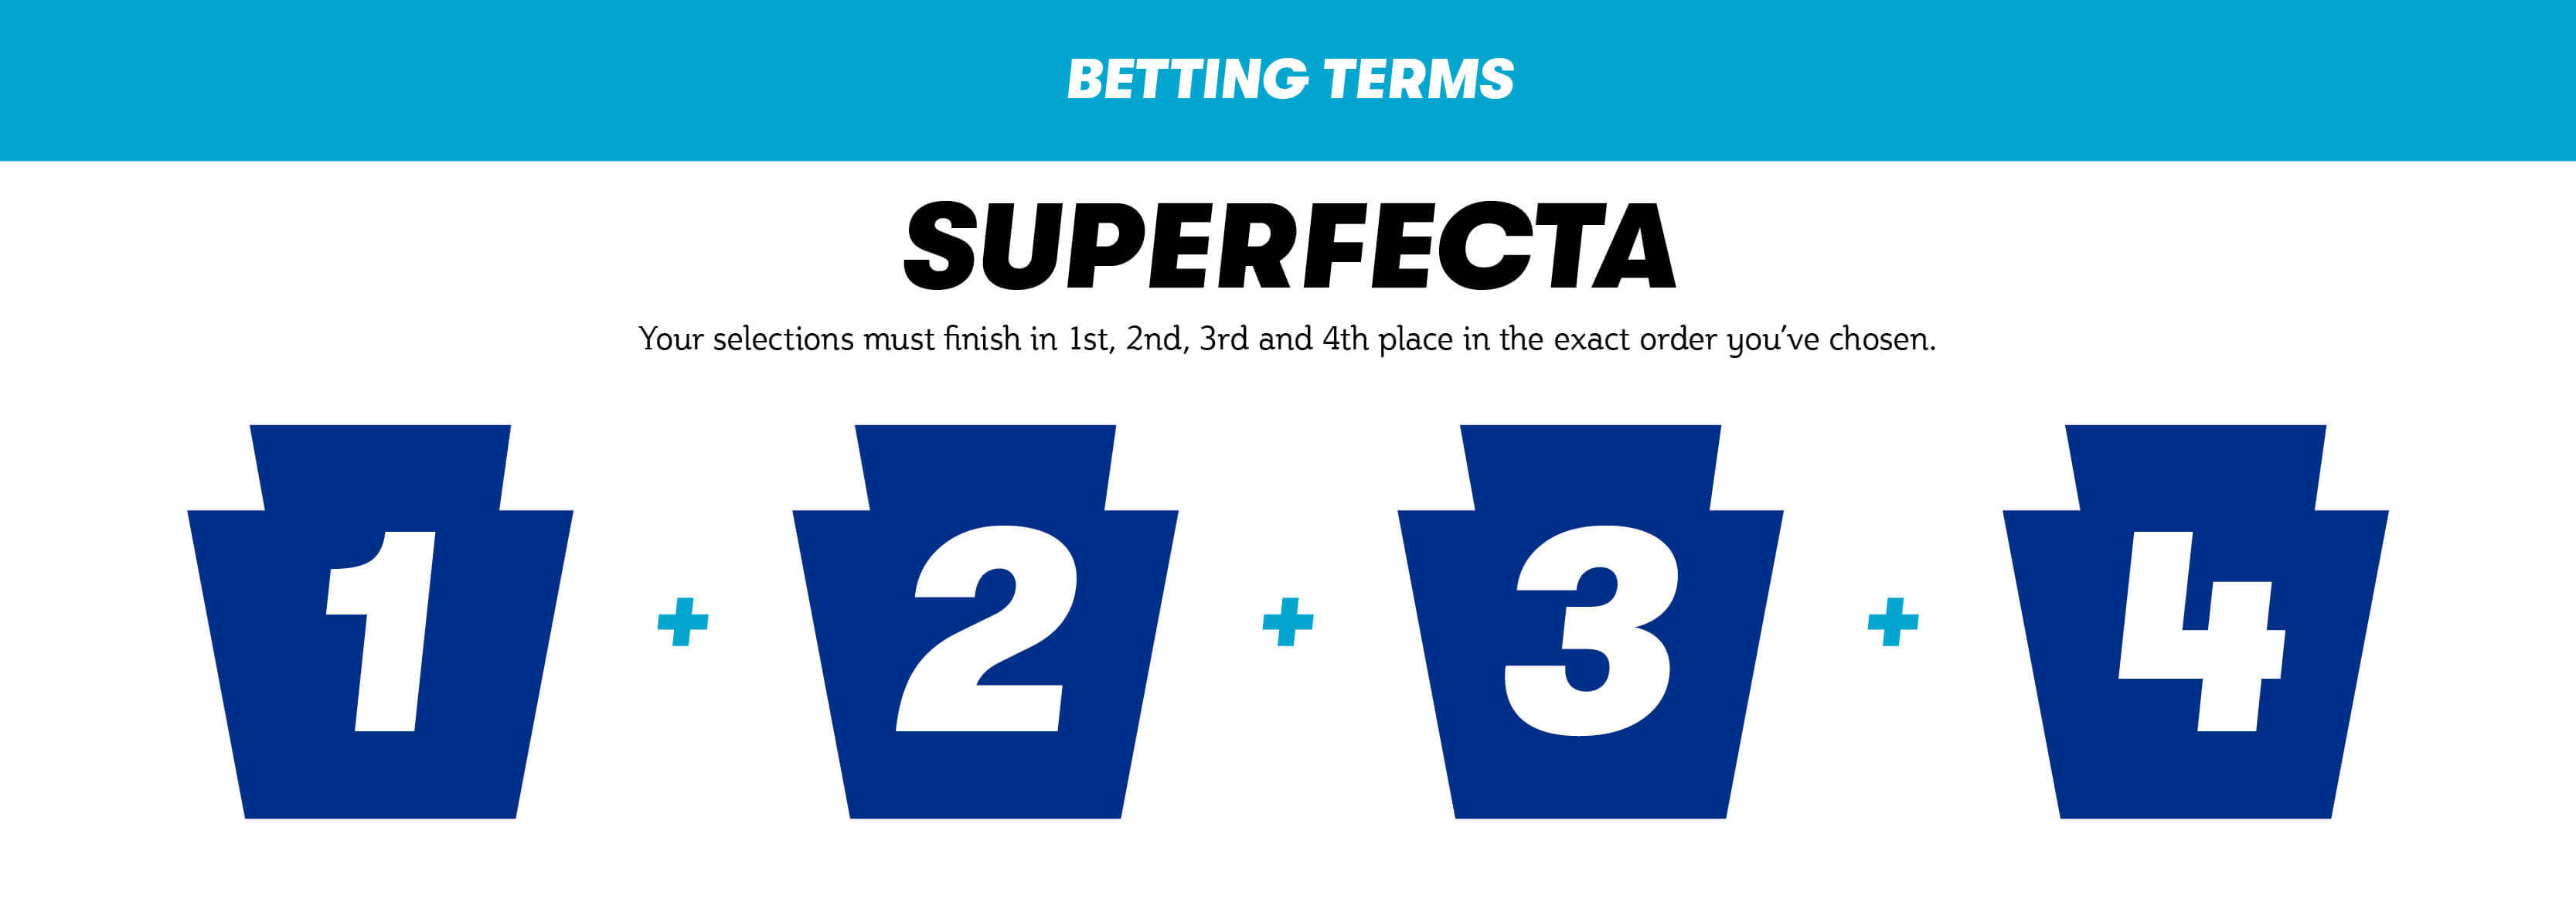 Superfecta. Your selections must finish in first, second, third and fourth place in the exact order you've chosen.